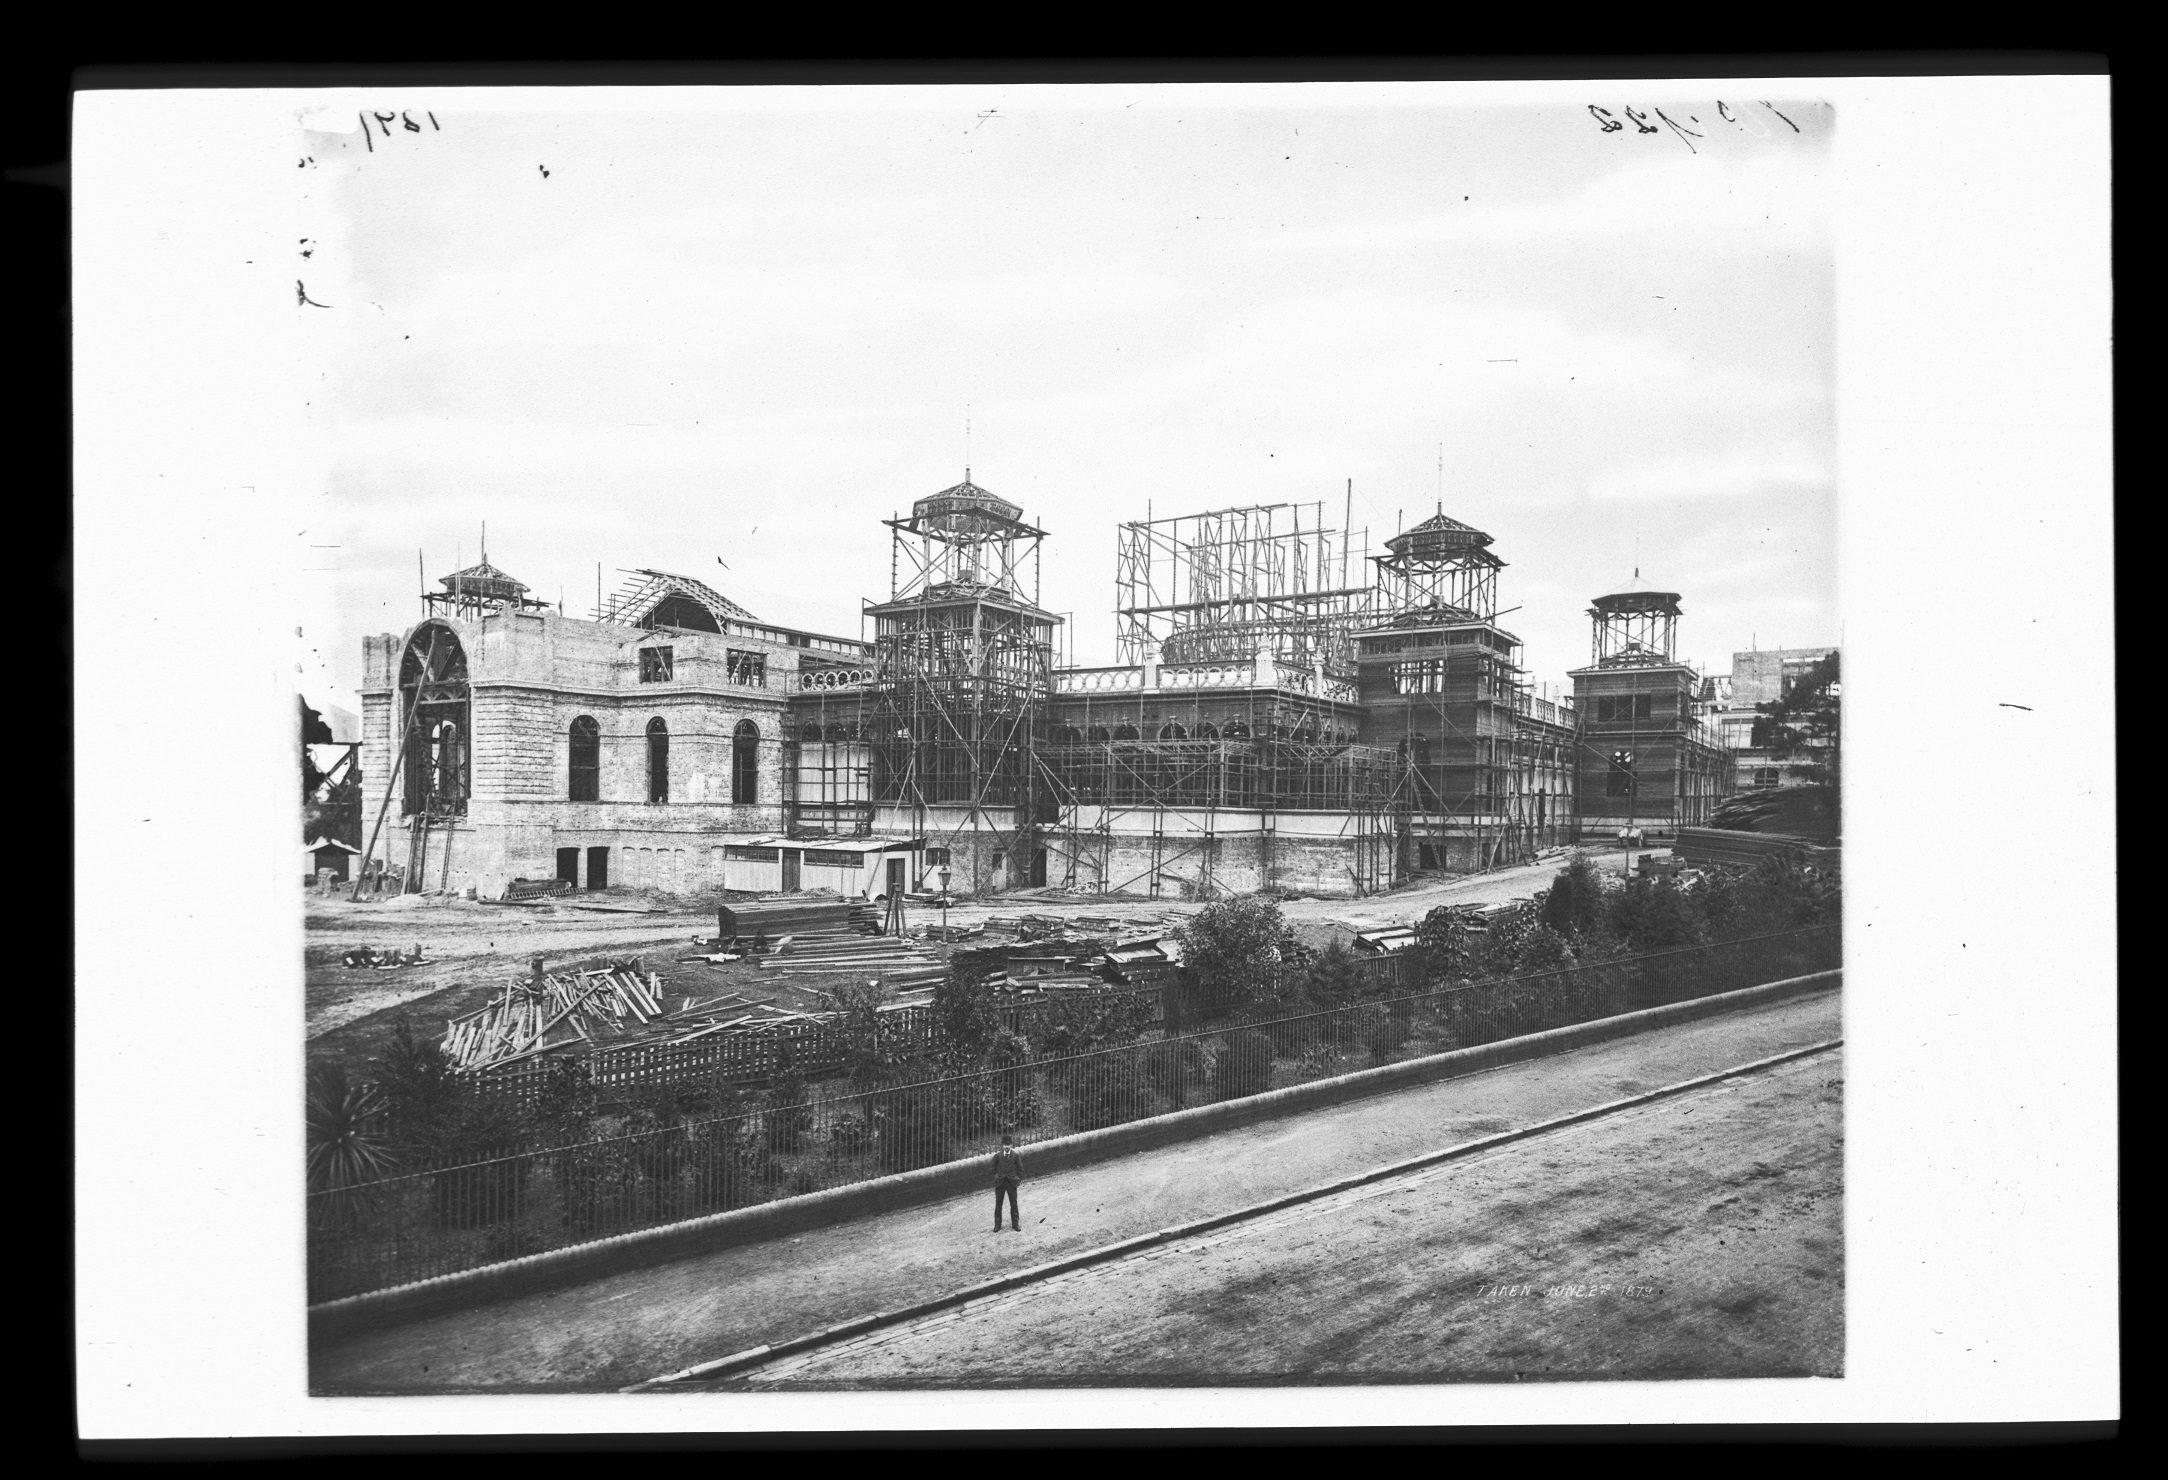 Garden Palace during construction, from Macquarie Street, 1879